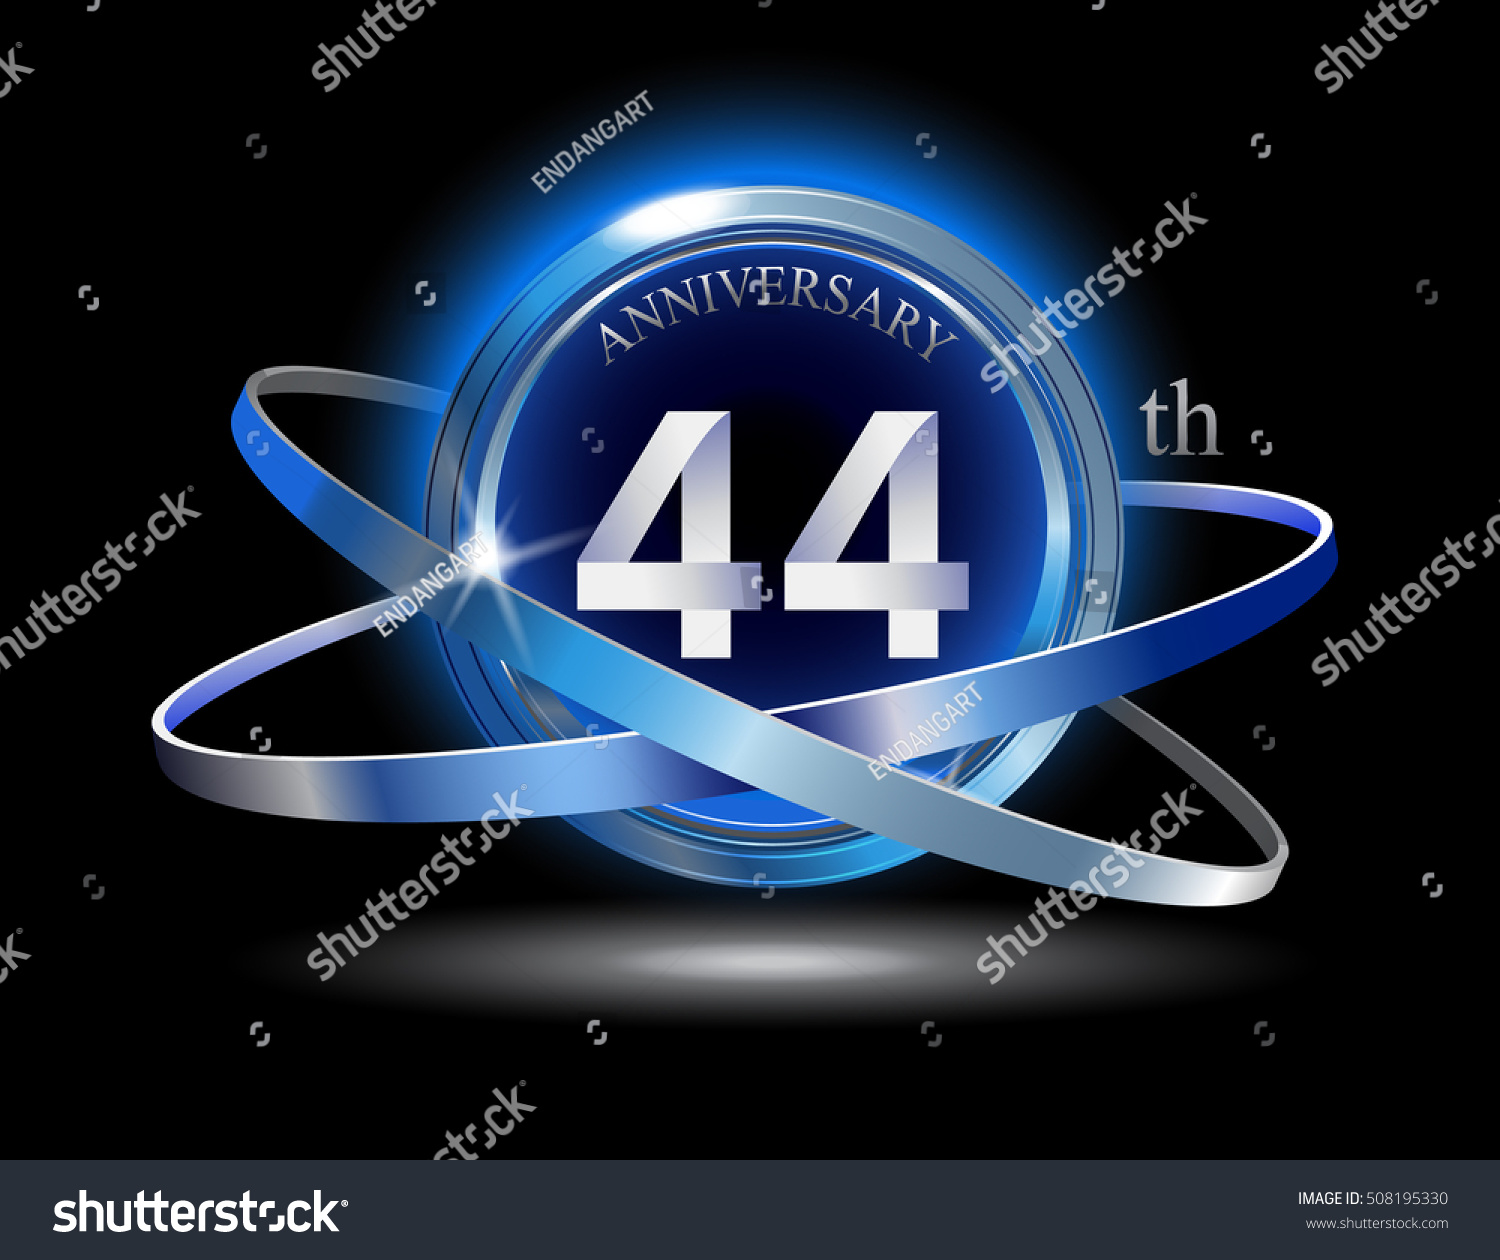 44th anniversary blue ring graphic elements stock vector 508195330 44th anniversary with blue ring graphic elements on black background biocorpaavc Gallery